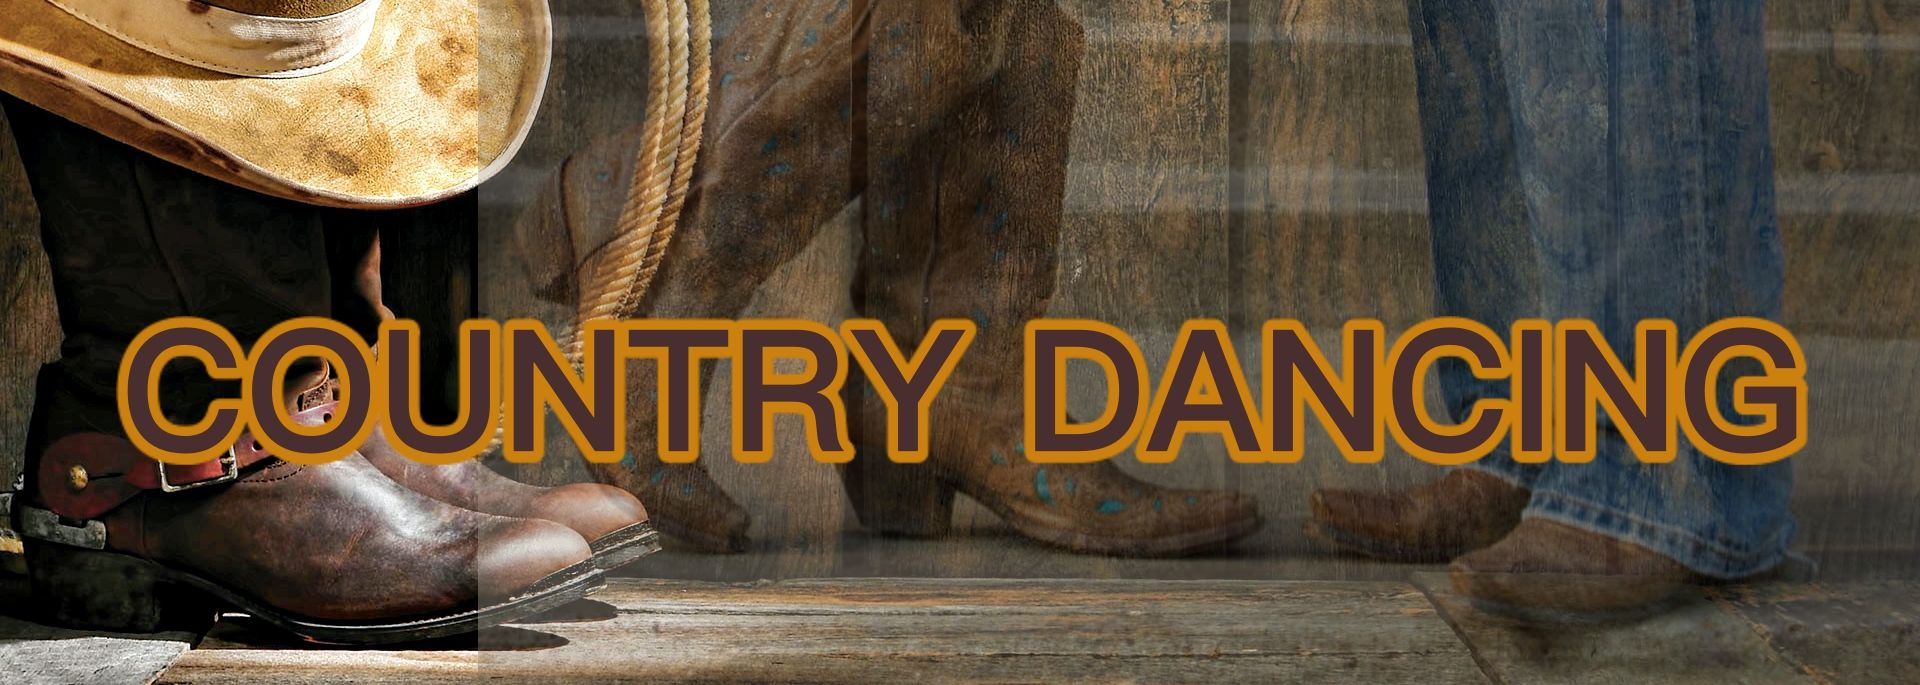 Country Dancing channel